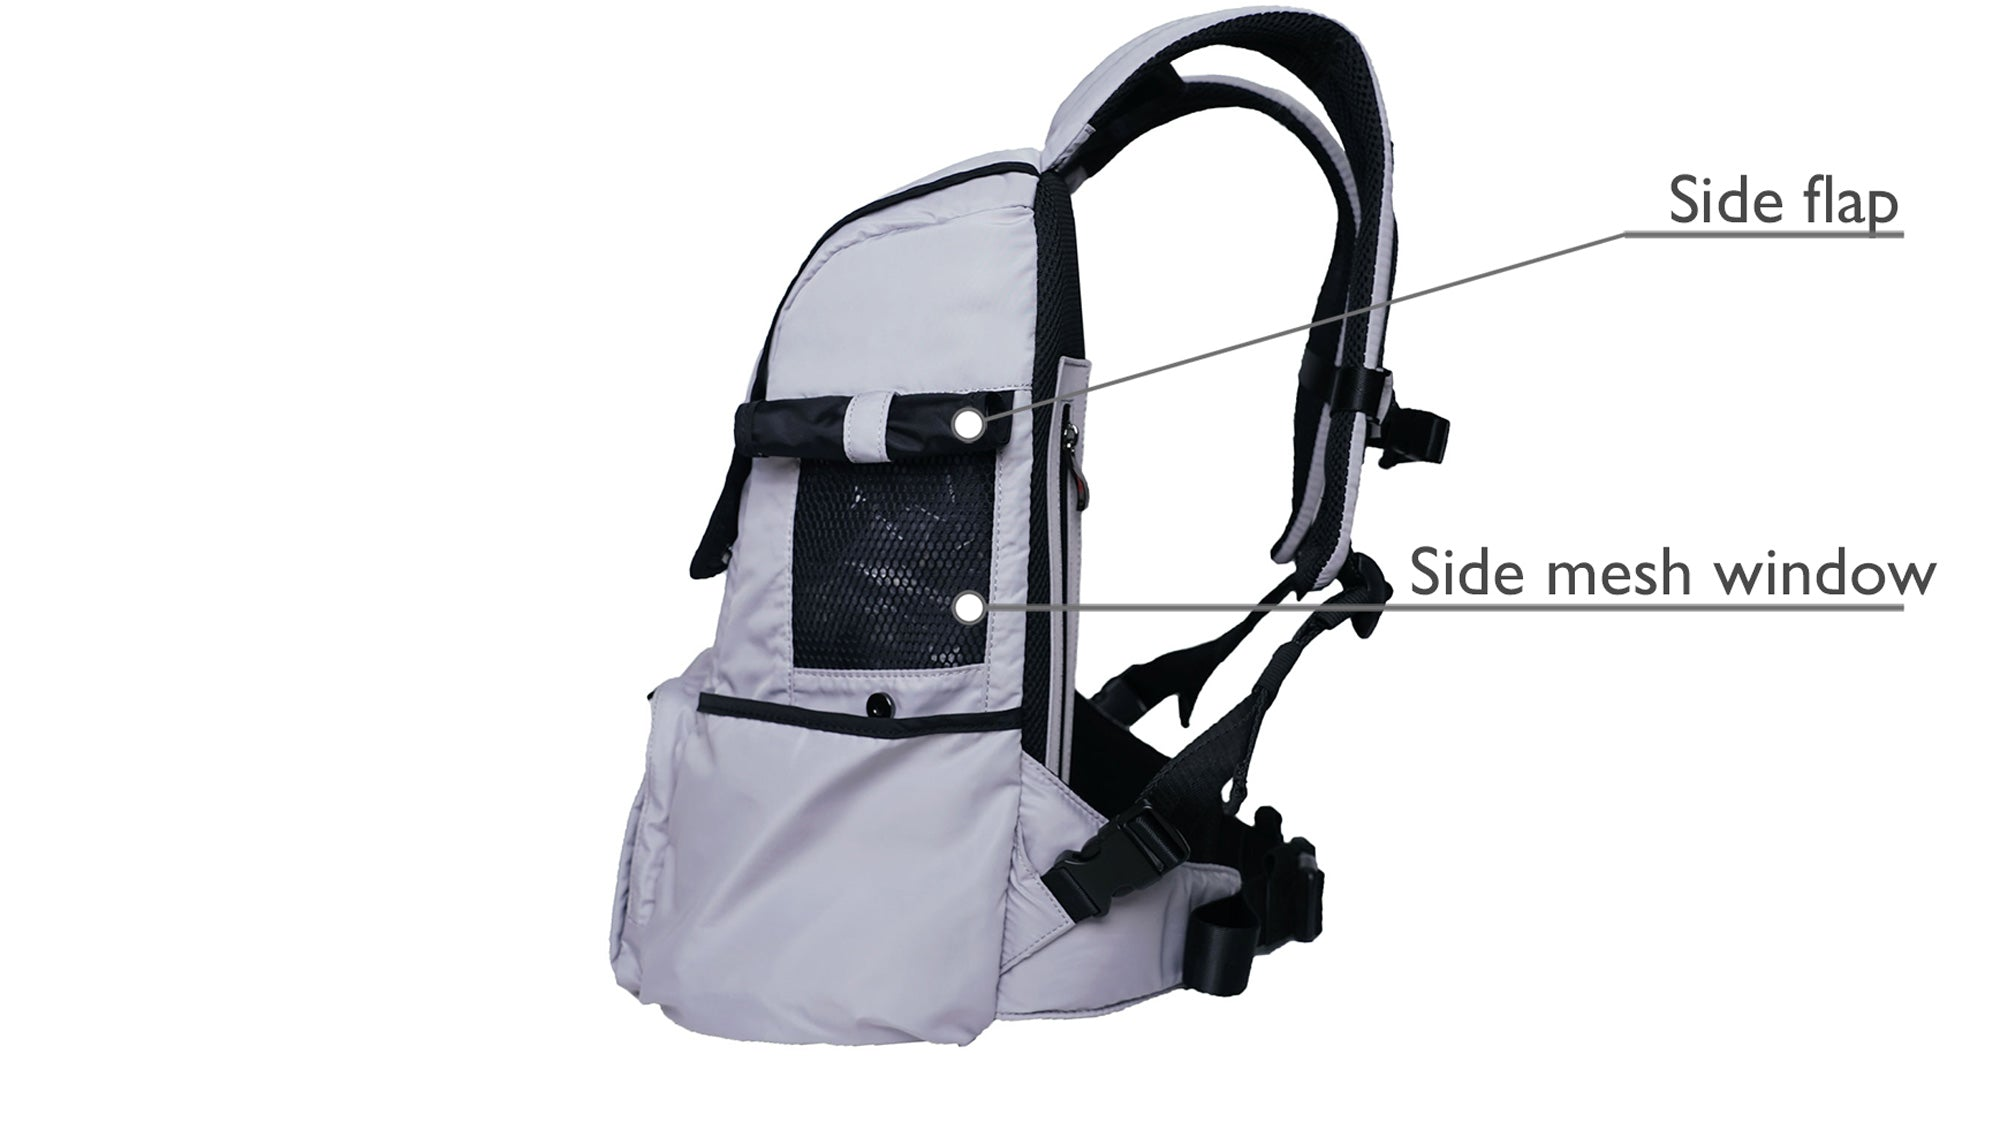 backpack dog carrier for small dog, a photo of the side view of the dog carrier